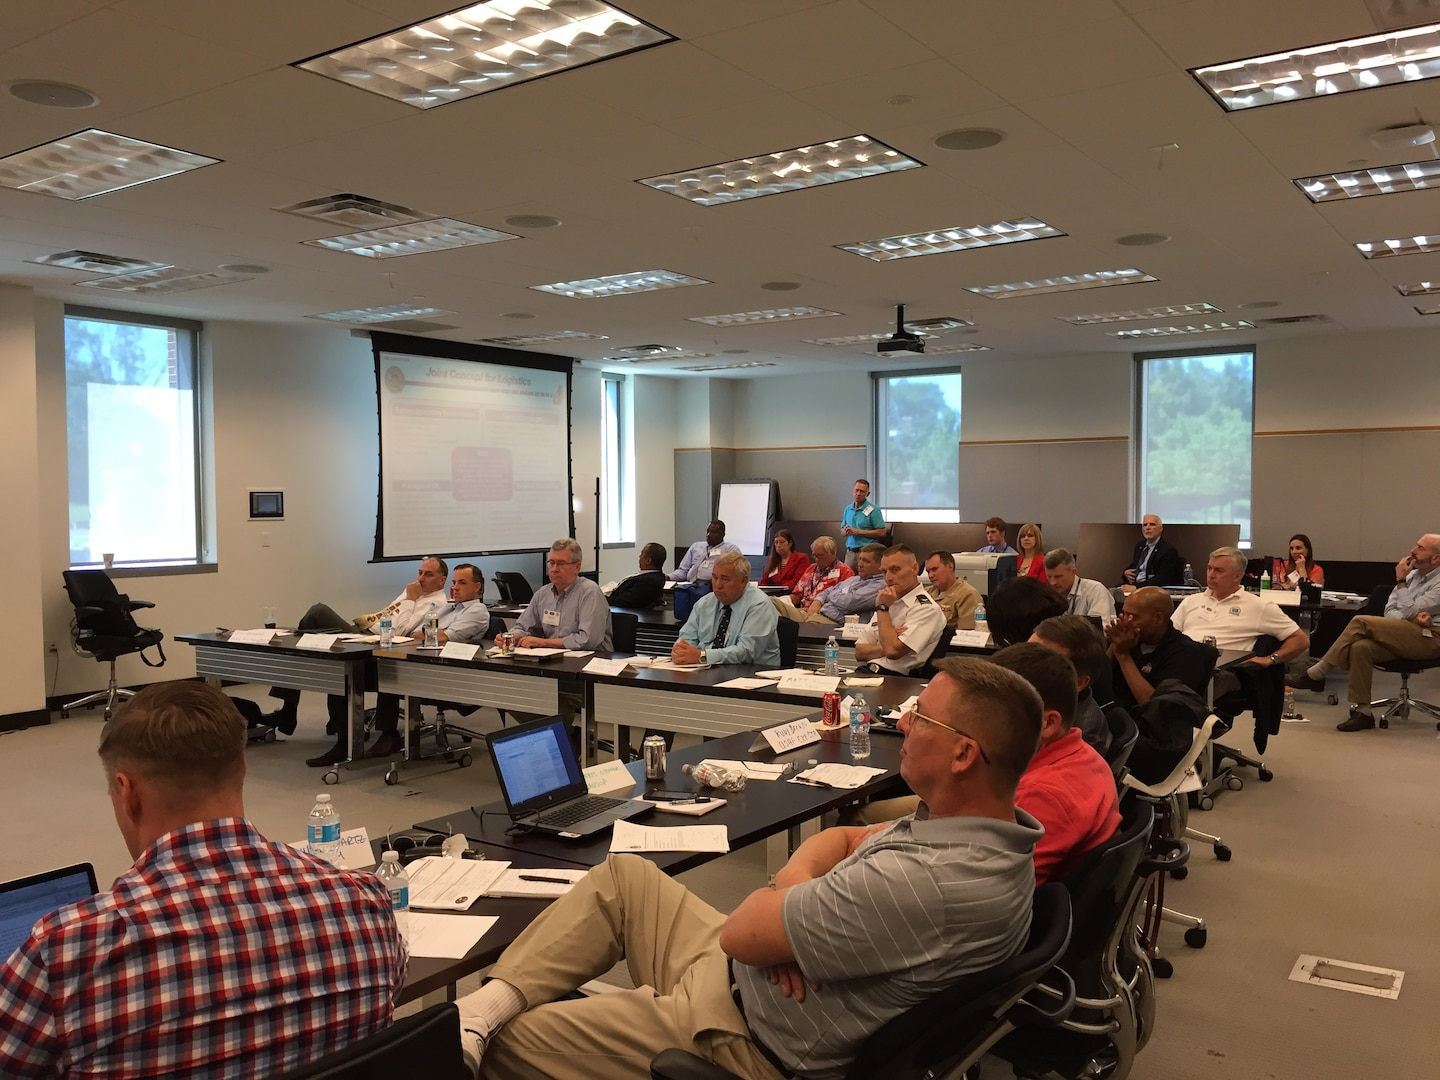 Over 30 faculty and staff members from  across the Department of Defense (DoD) joint professional military, graduate and continuing education schools, as well as Office of the Secretary of Defense, Joint and Service logistics directorates, recently gathered at the National Defense University on Fort McNair in Washington DC for the annual Joint Logistics Faculty Development Workshop.  The purpose of this event, hosted by the Center for Joint & Strategic Logistics (CJSL), was to bring the joint logistics professional development community of practice together to hear about the latest issues facing the Joint Logistics Enterprise.  In addition, the participants traded best practices for teaching logistics and sustainment principles at their respective institutions.